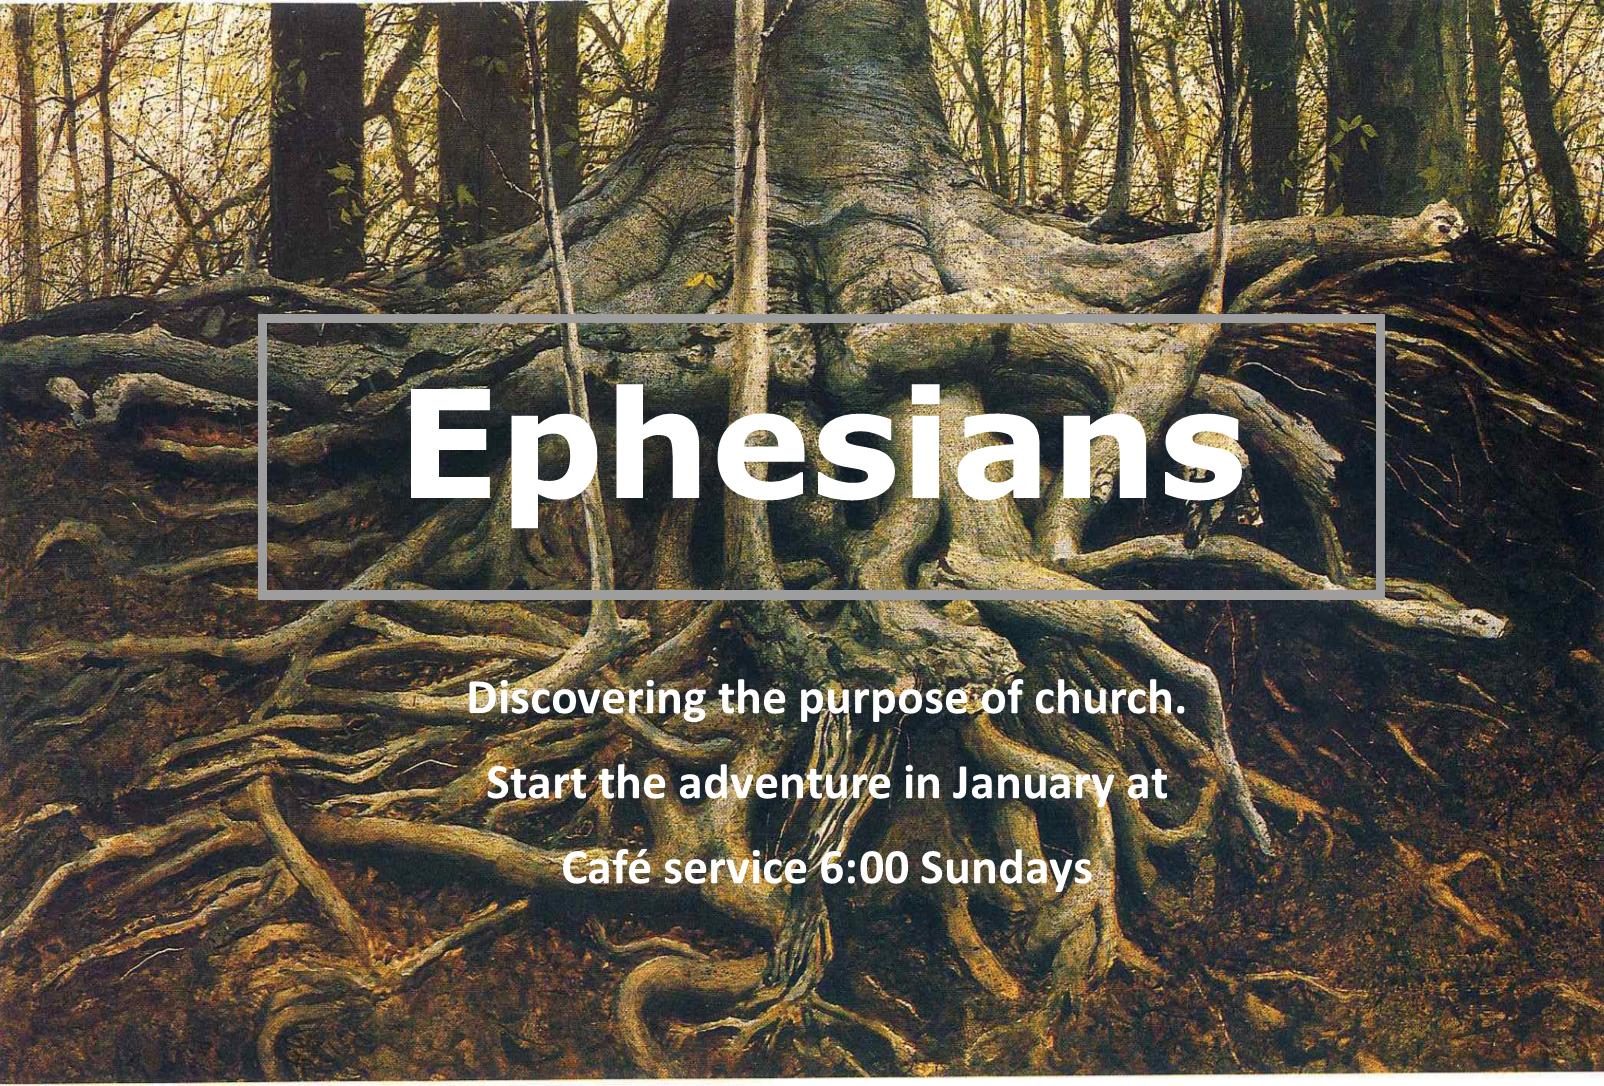 Ephesians Cafe Worship